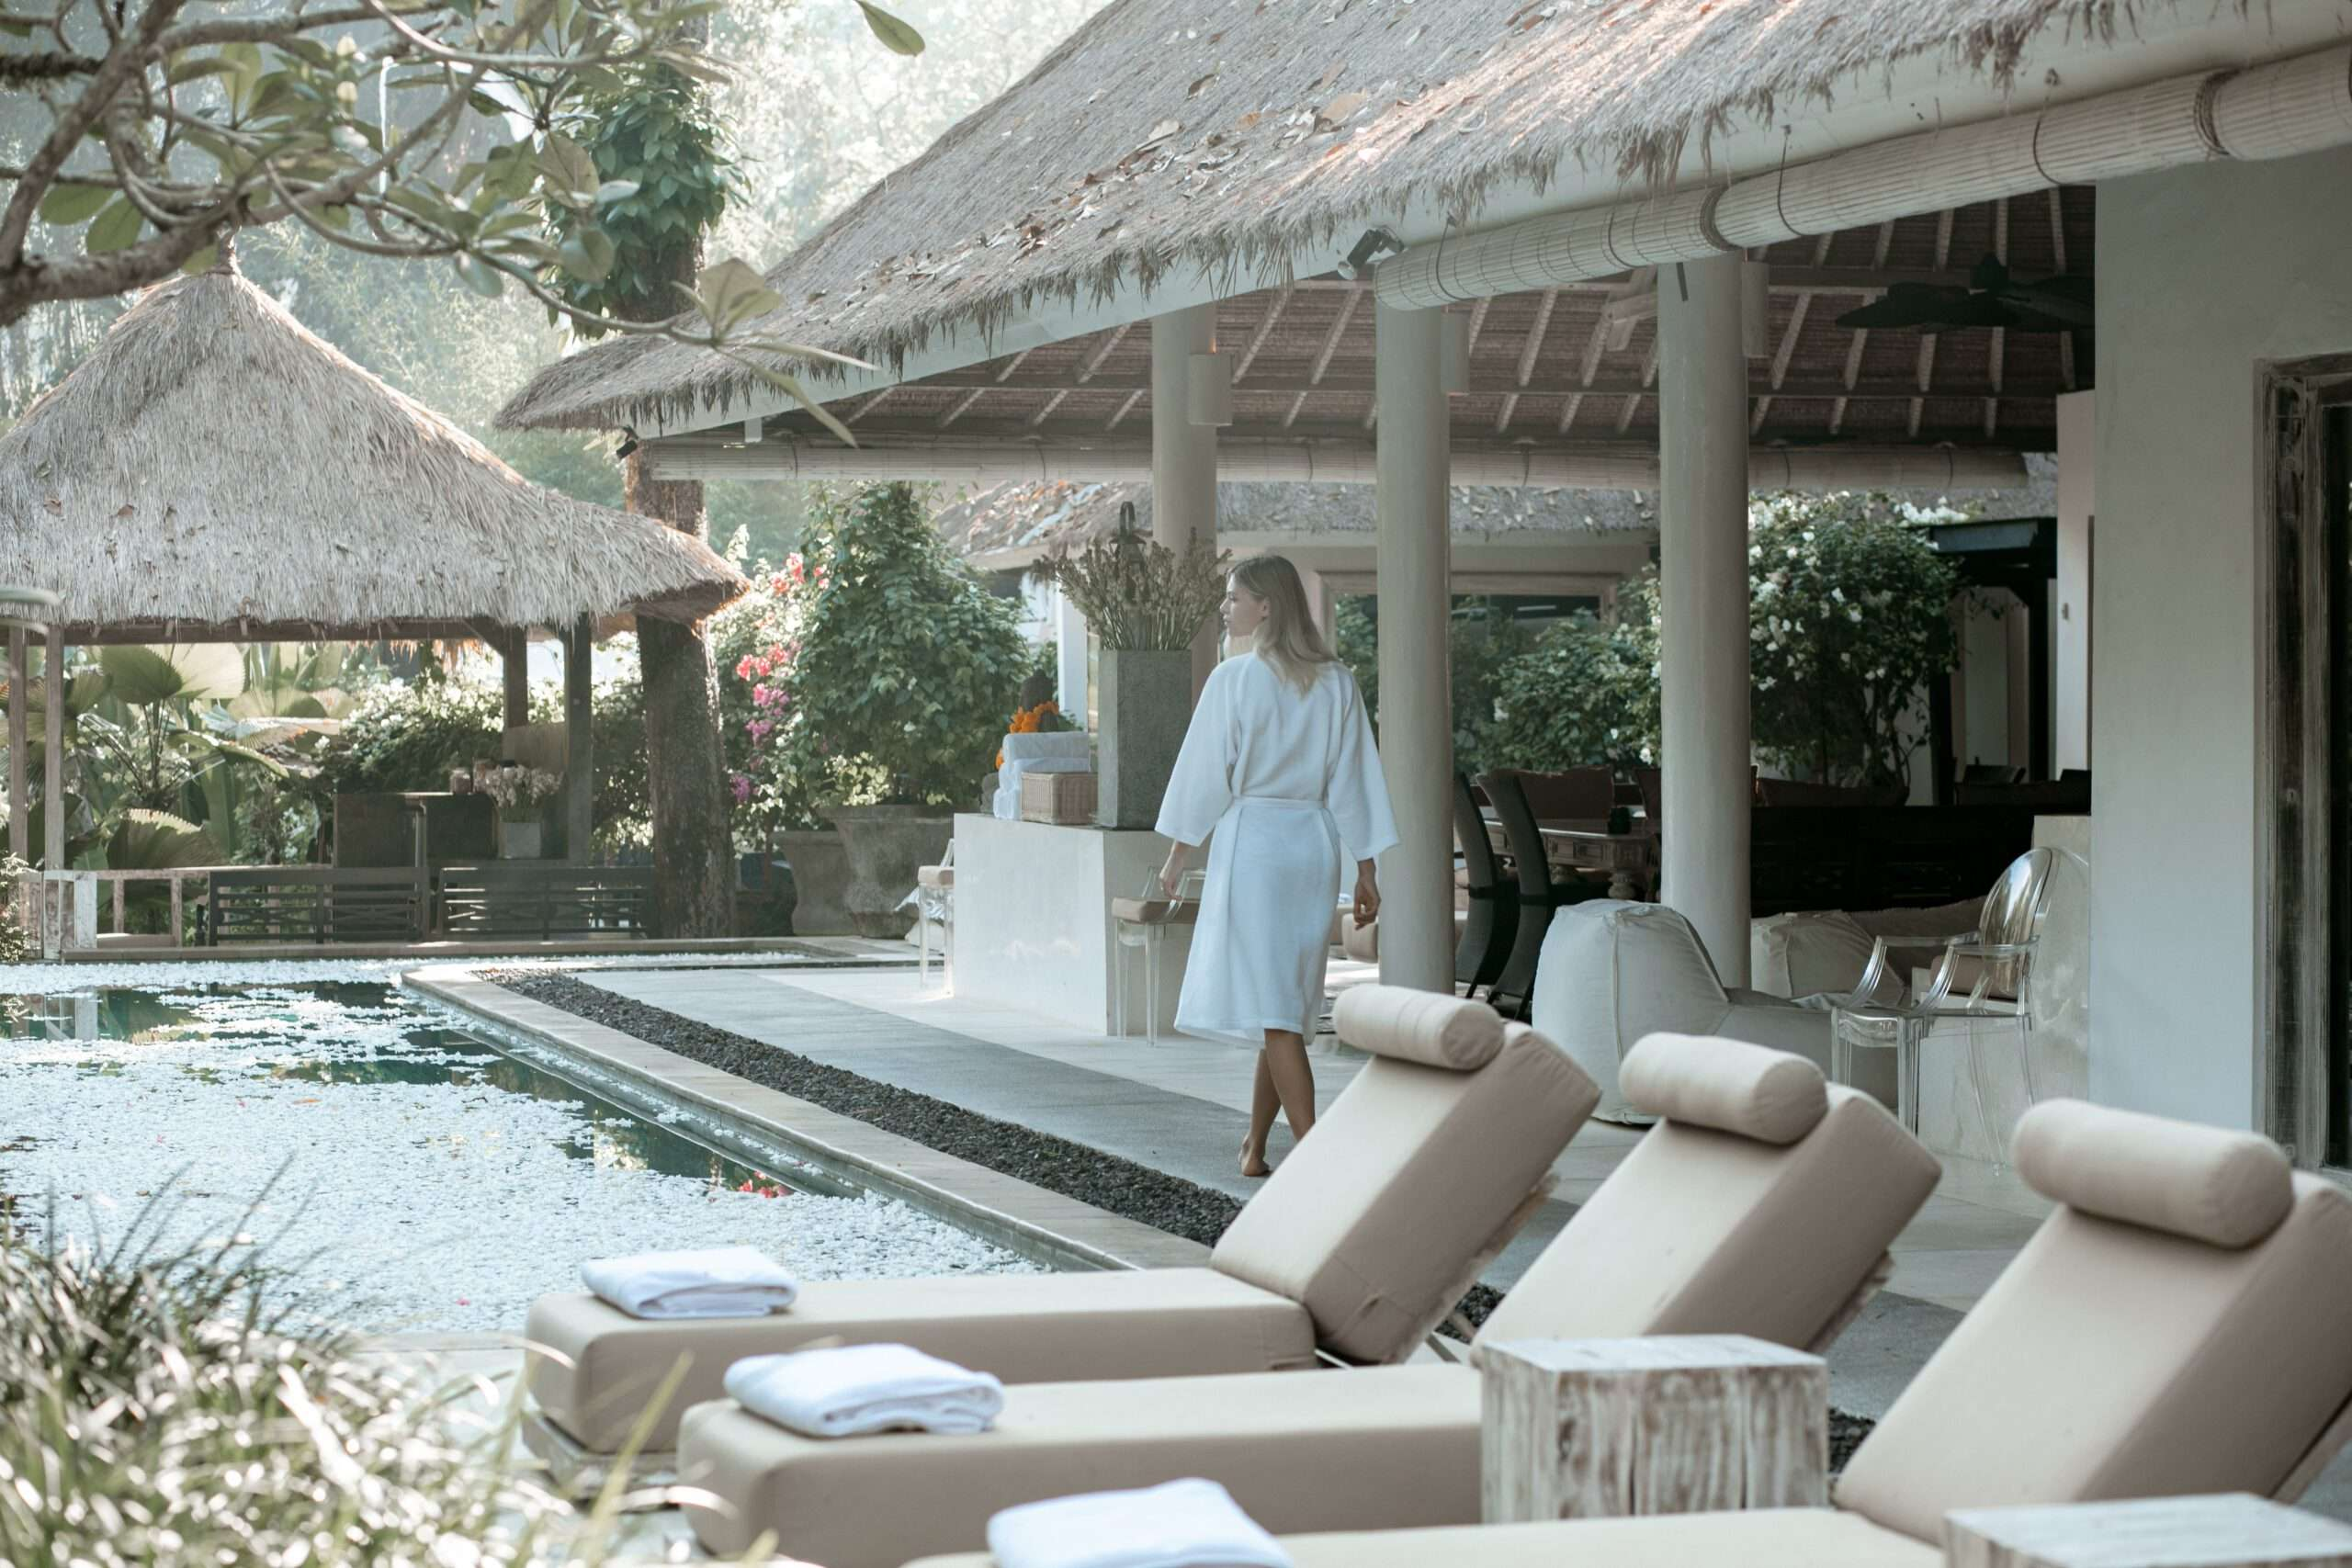 lady wearing a white bathrobe walks beside the pool filled with petals at Villa Sungai Bali